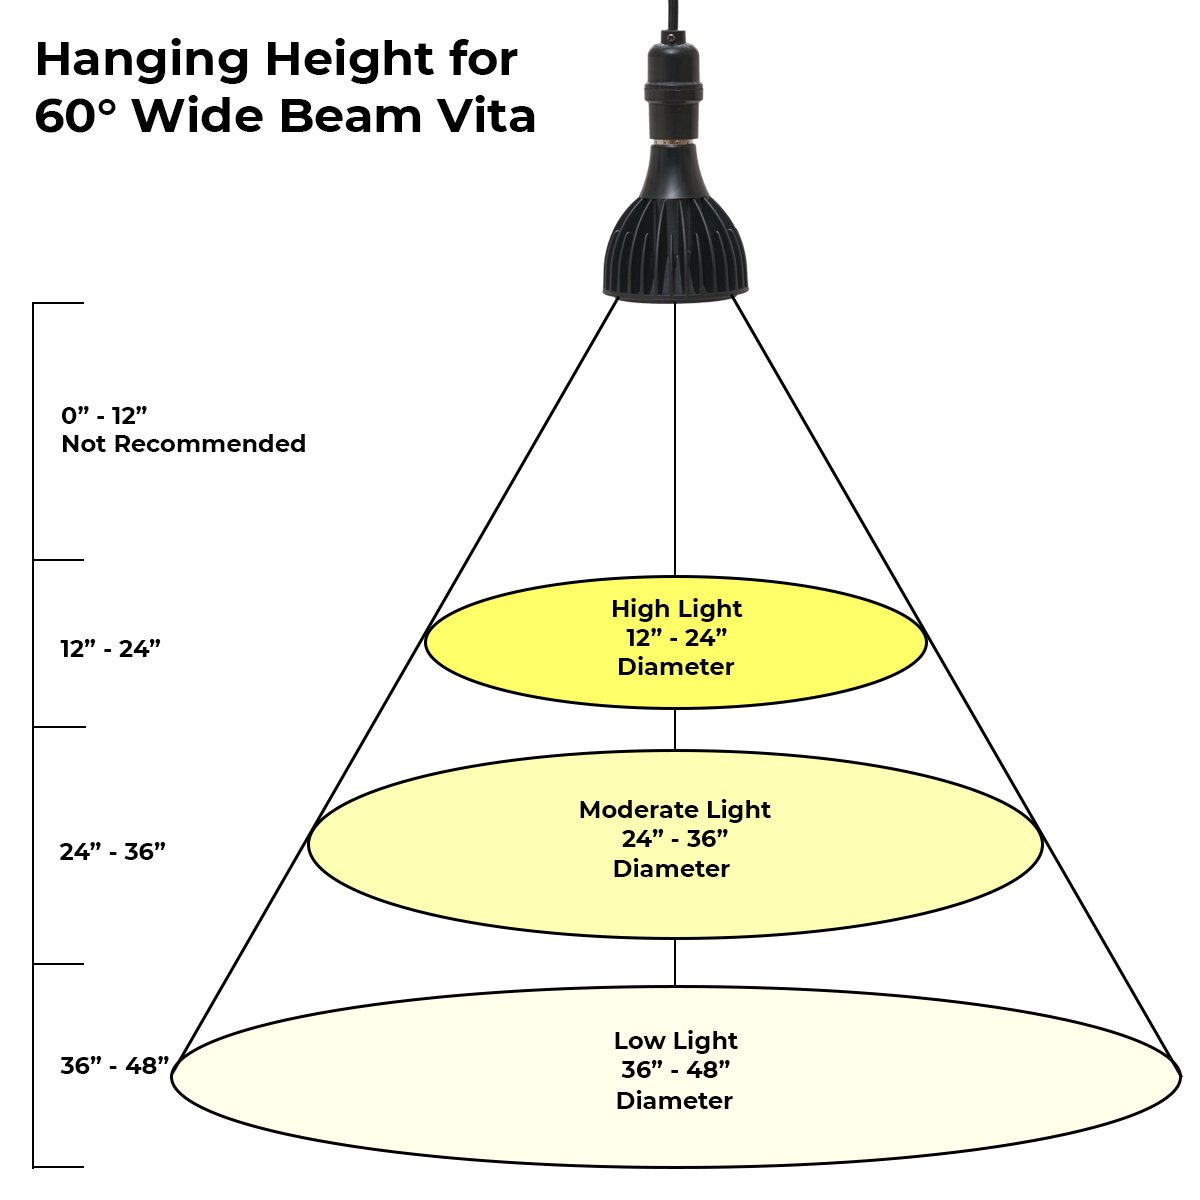 Hanging Heights 60 wide beam angle